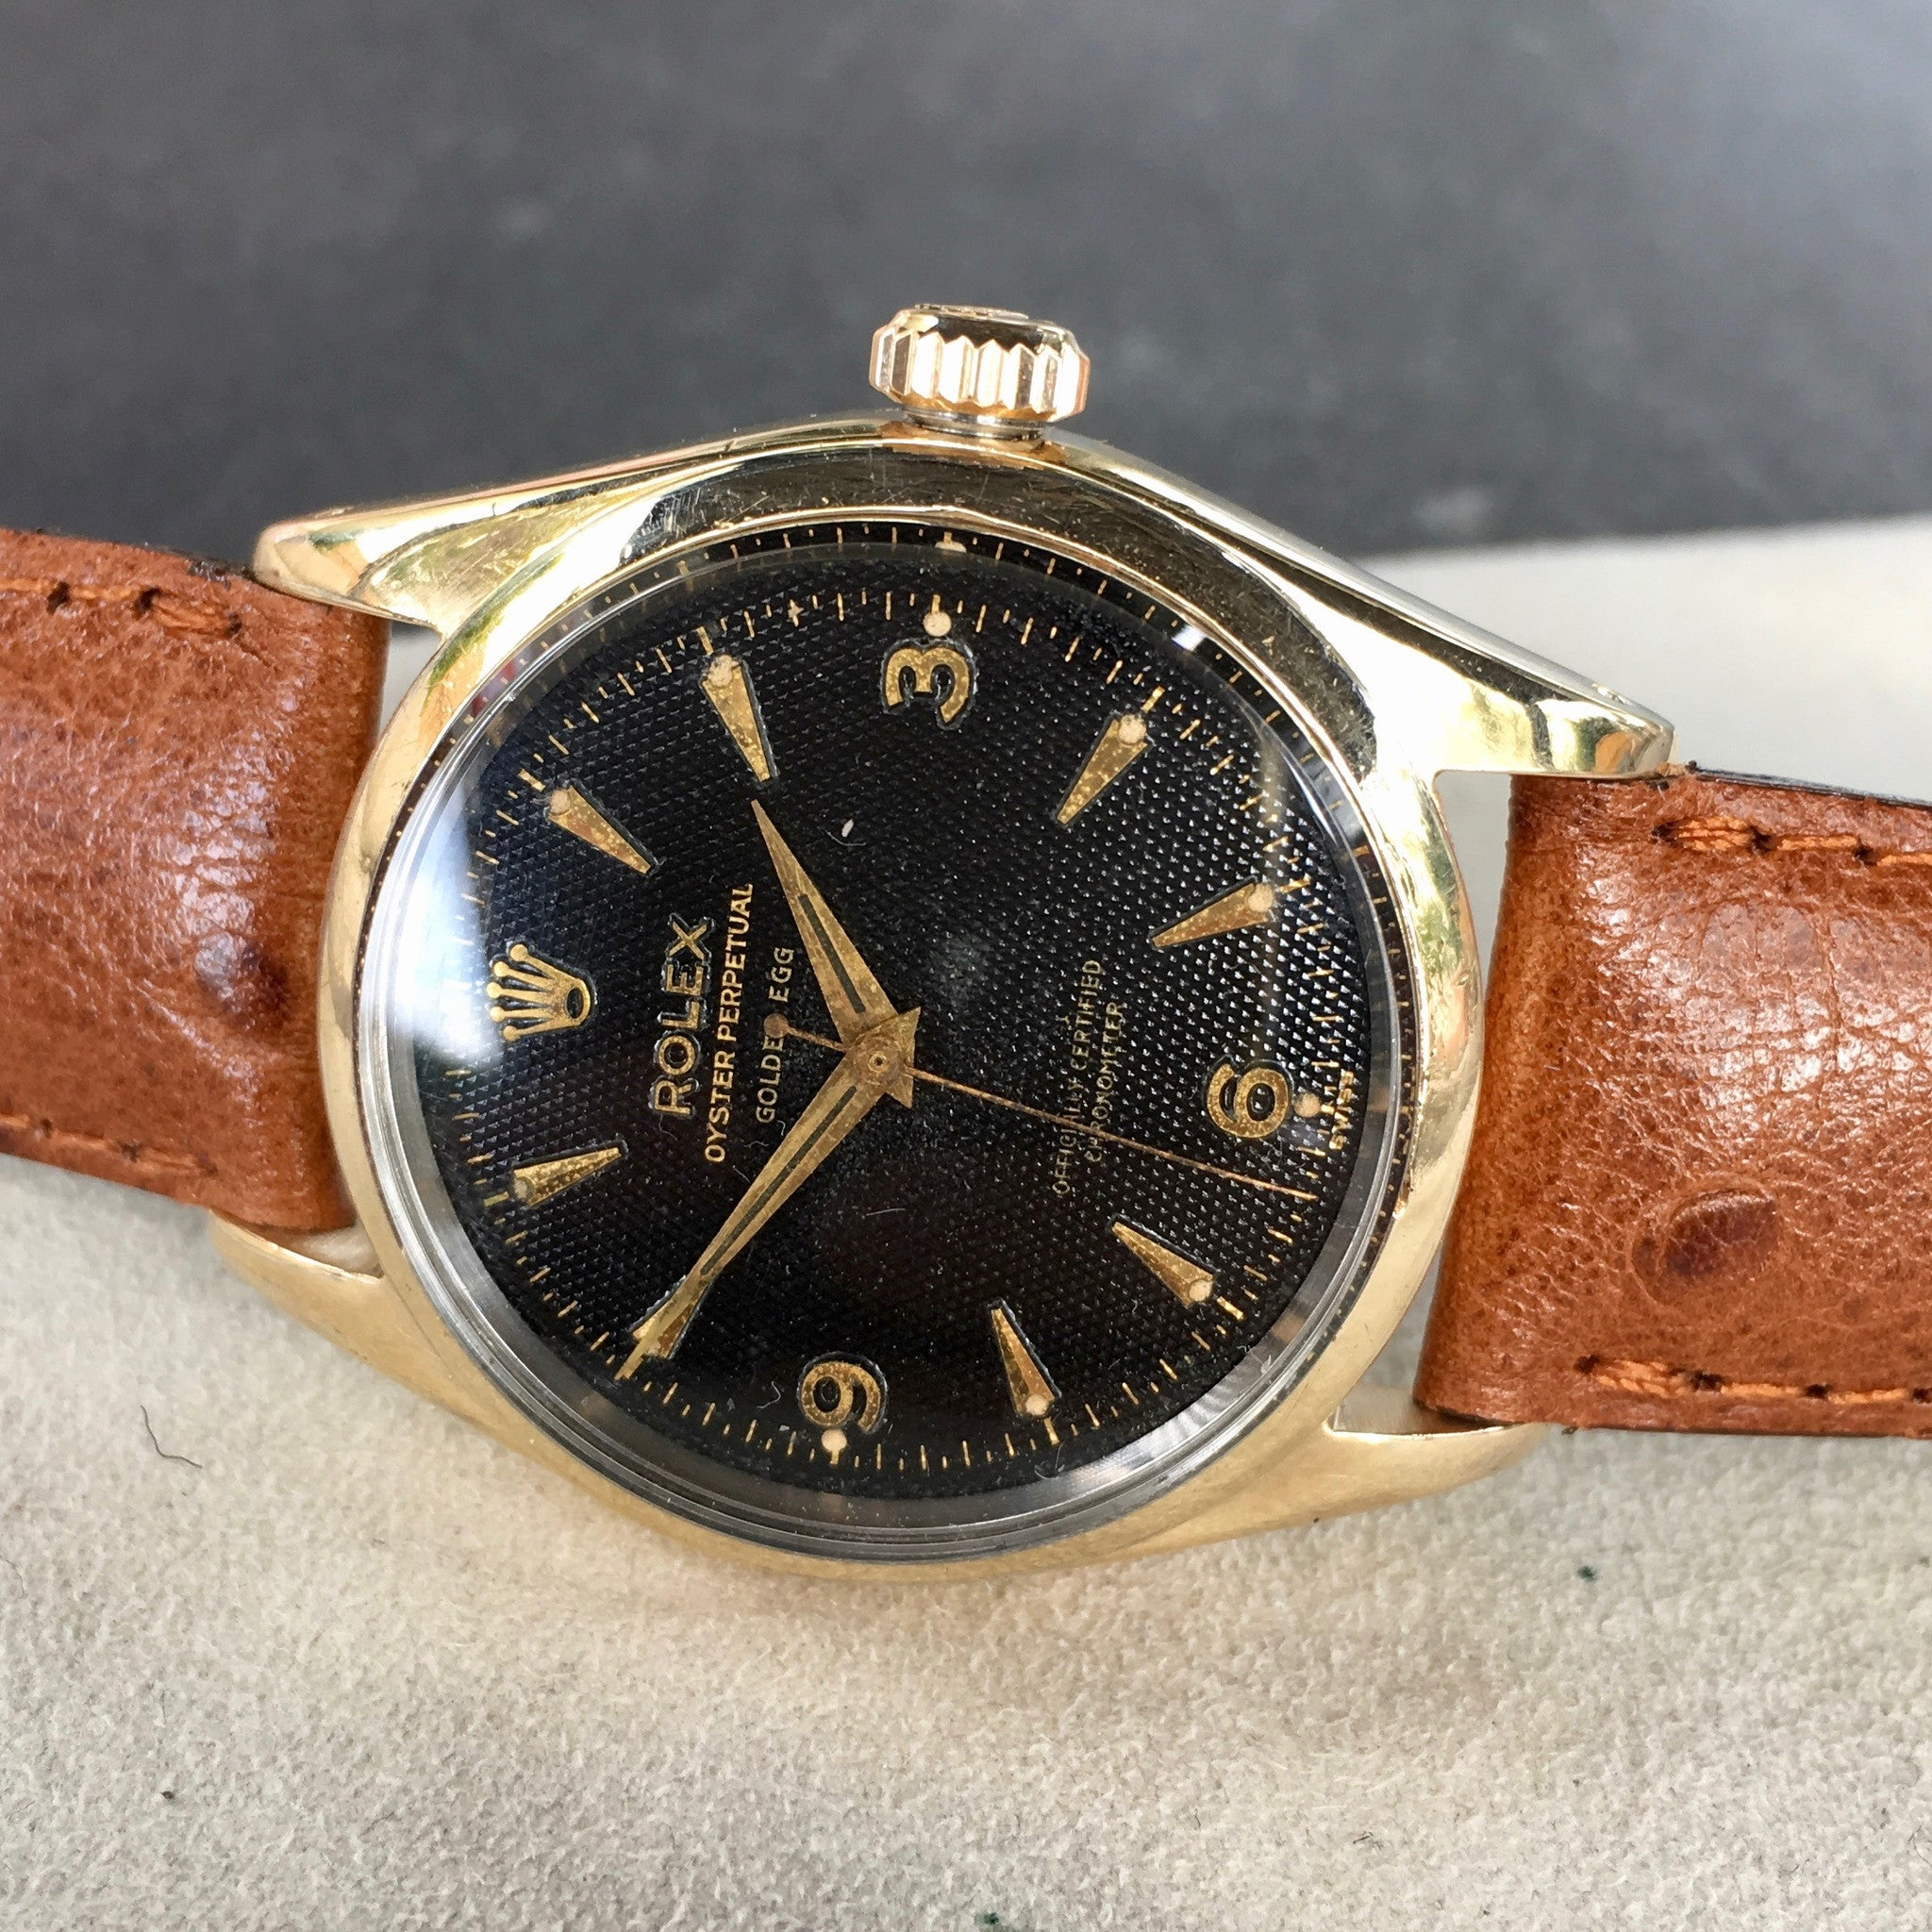 "Vintage Rolex Oyster Perpetual 6634 ""Golden Egg"" Gold Capped Gilt Black Waffle Wristwatch - Hashtag Watch Company"